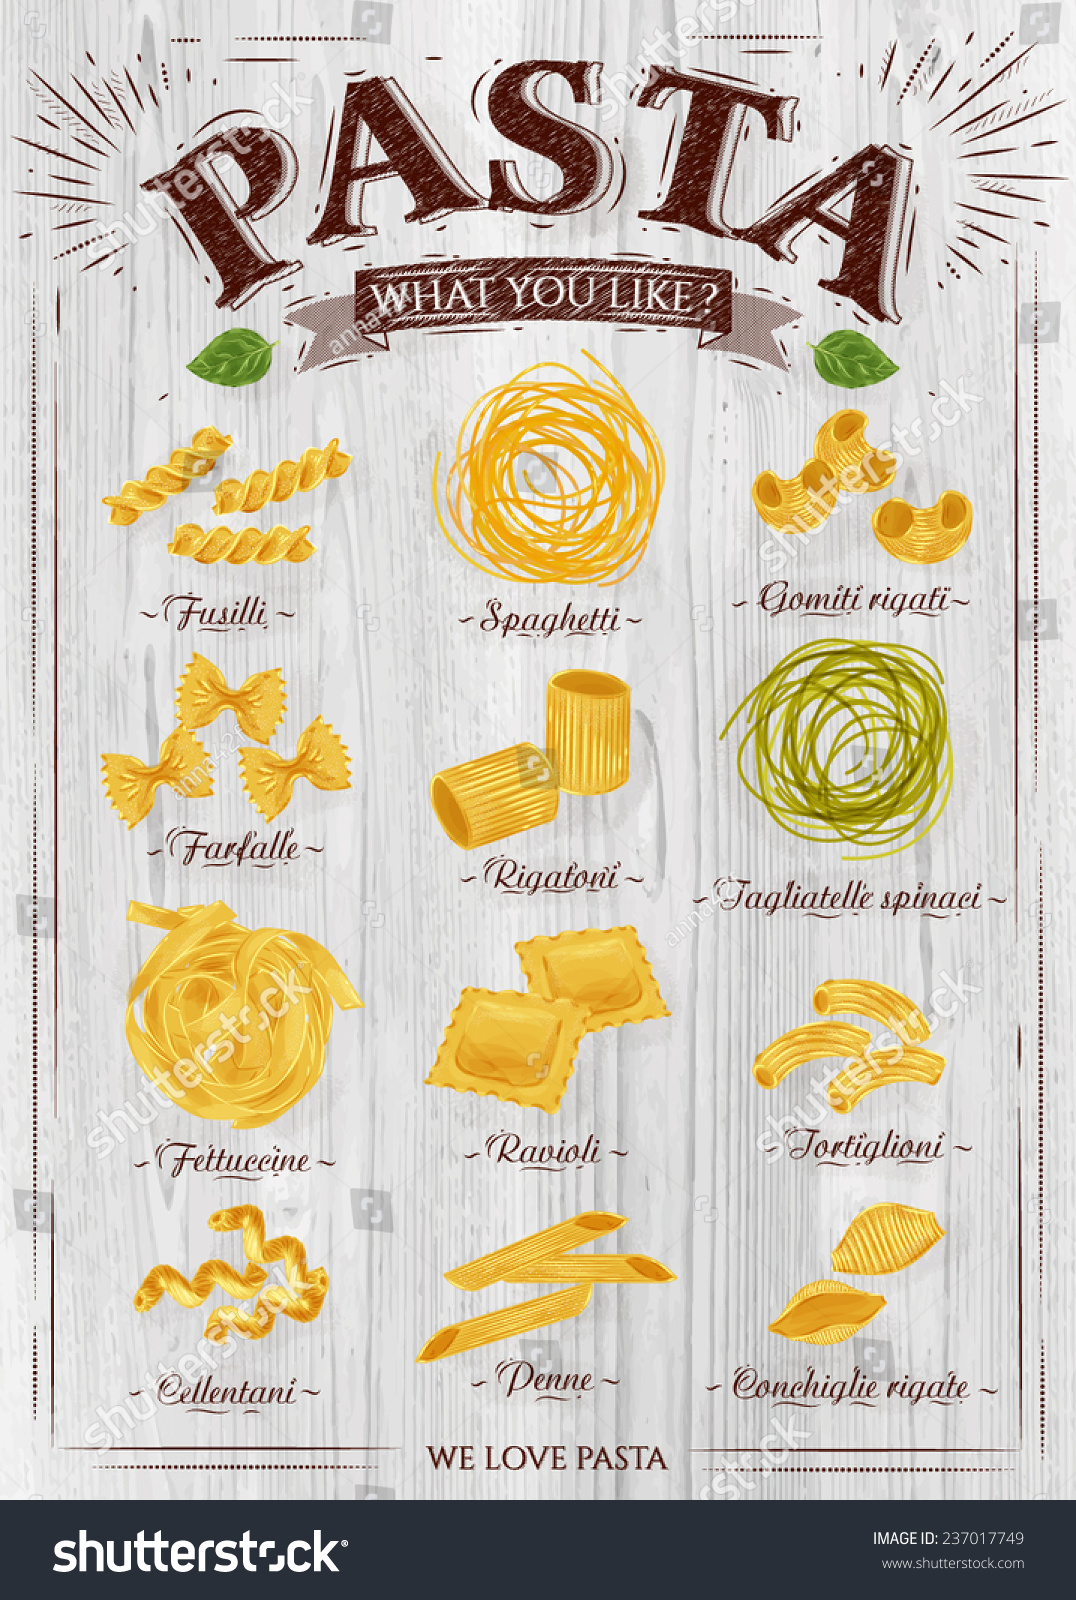 Poster Set Pasta Different Types Pasta Stock Vector 237017749 ...